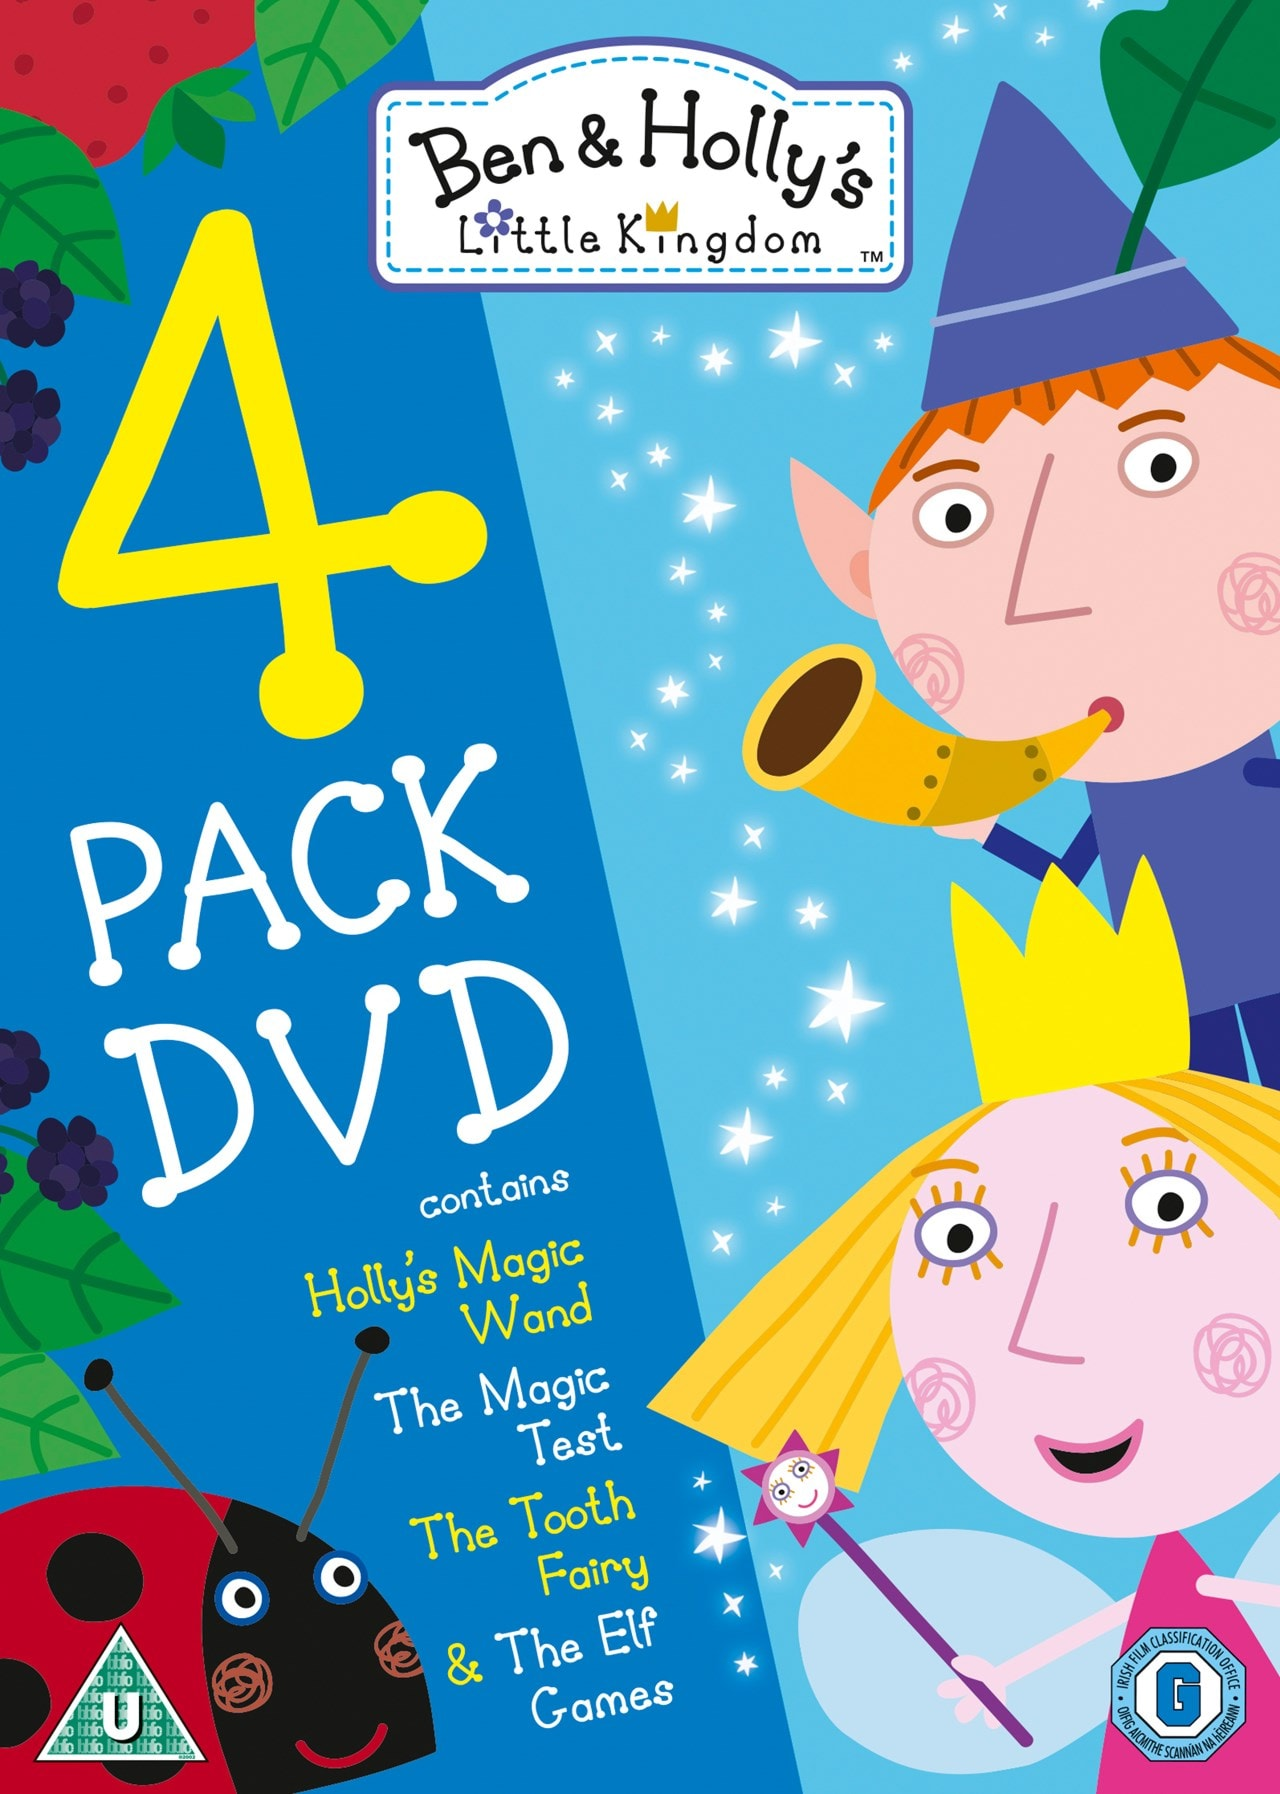 Ben and Holly's Little Kingdom: The Magical Collection - 1